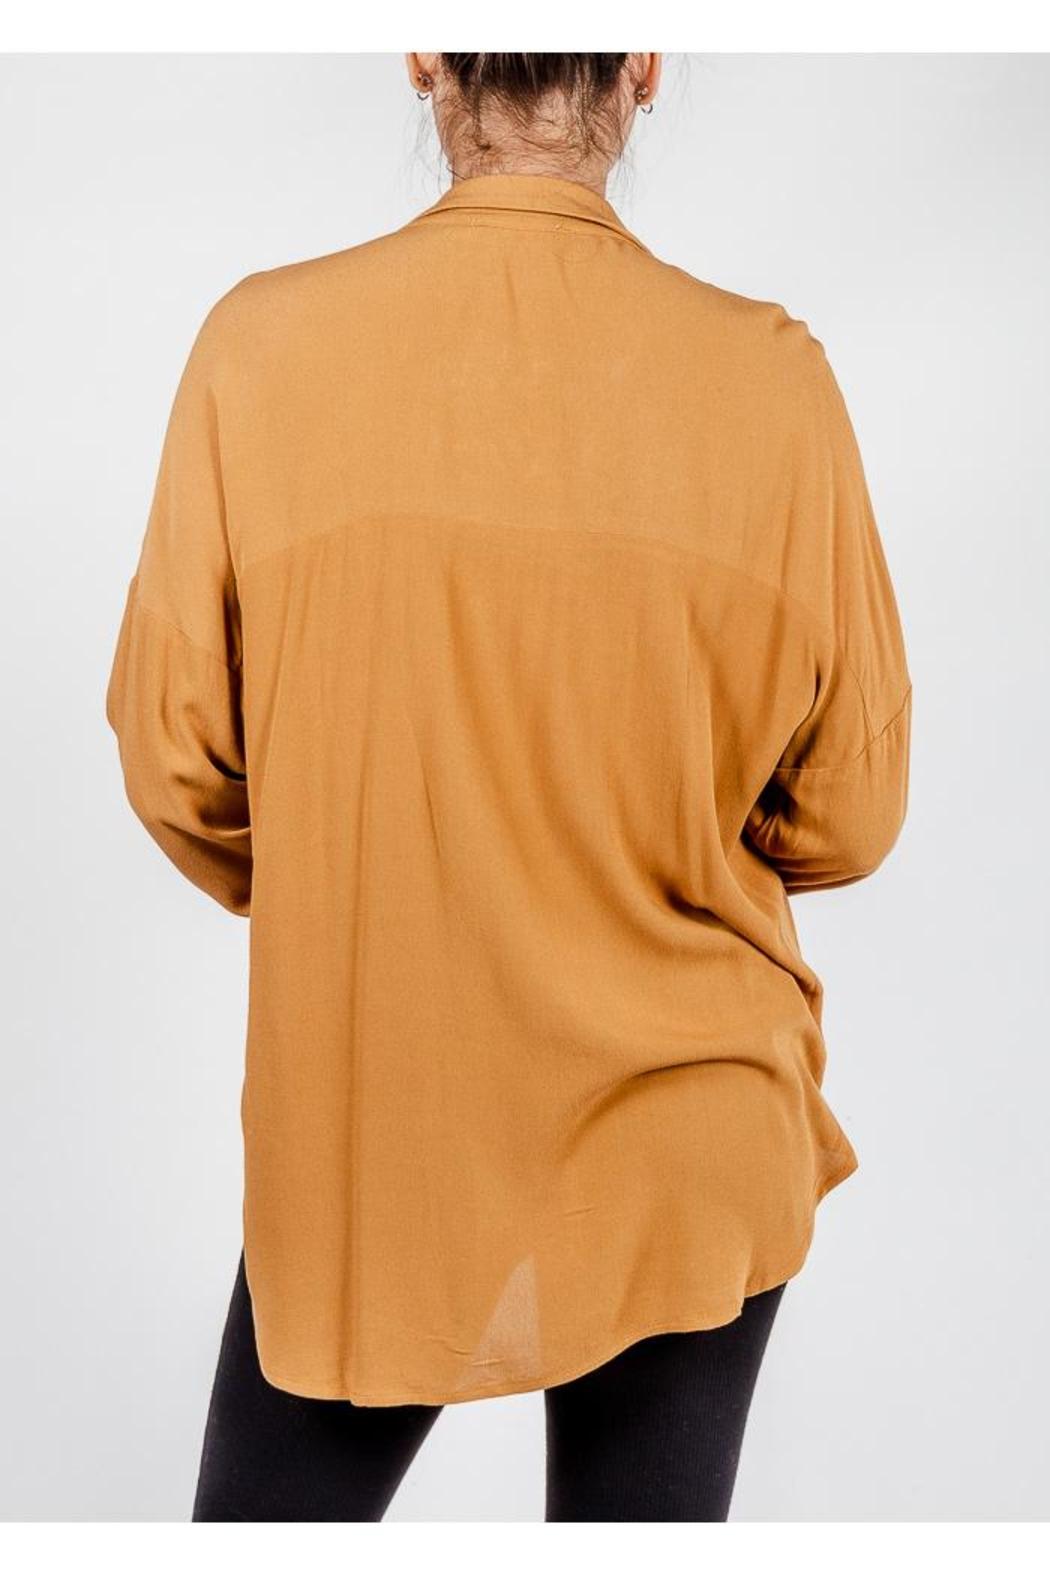 All In Favor Breezy Chic Blouse - Back Cropped Image